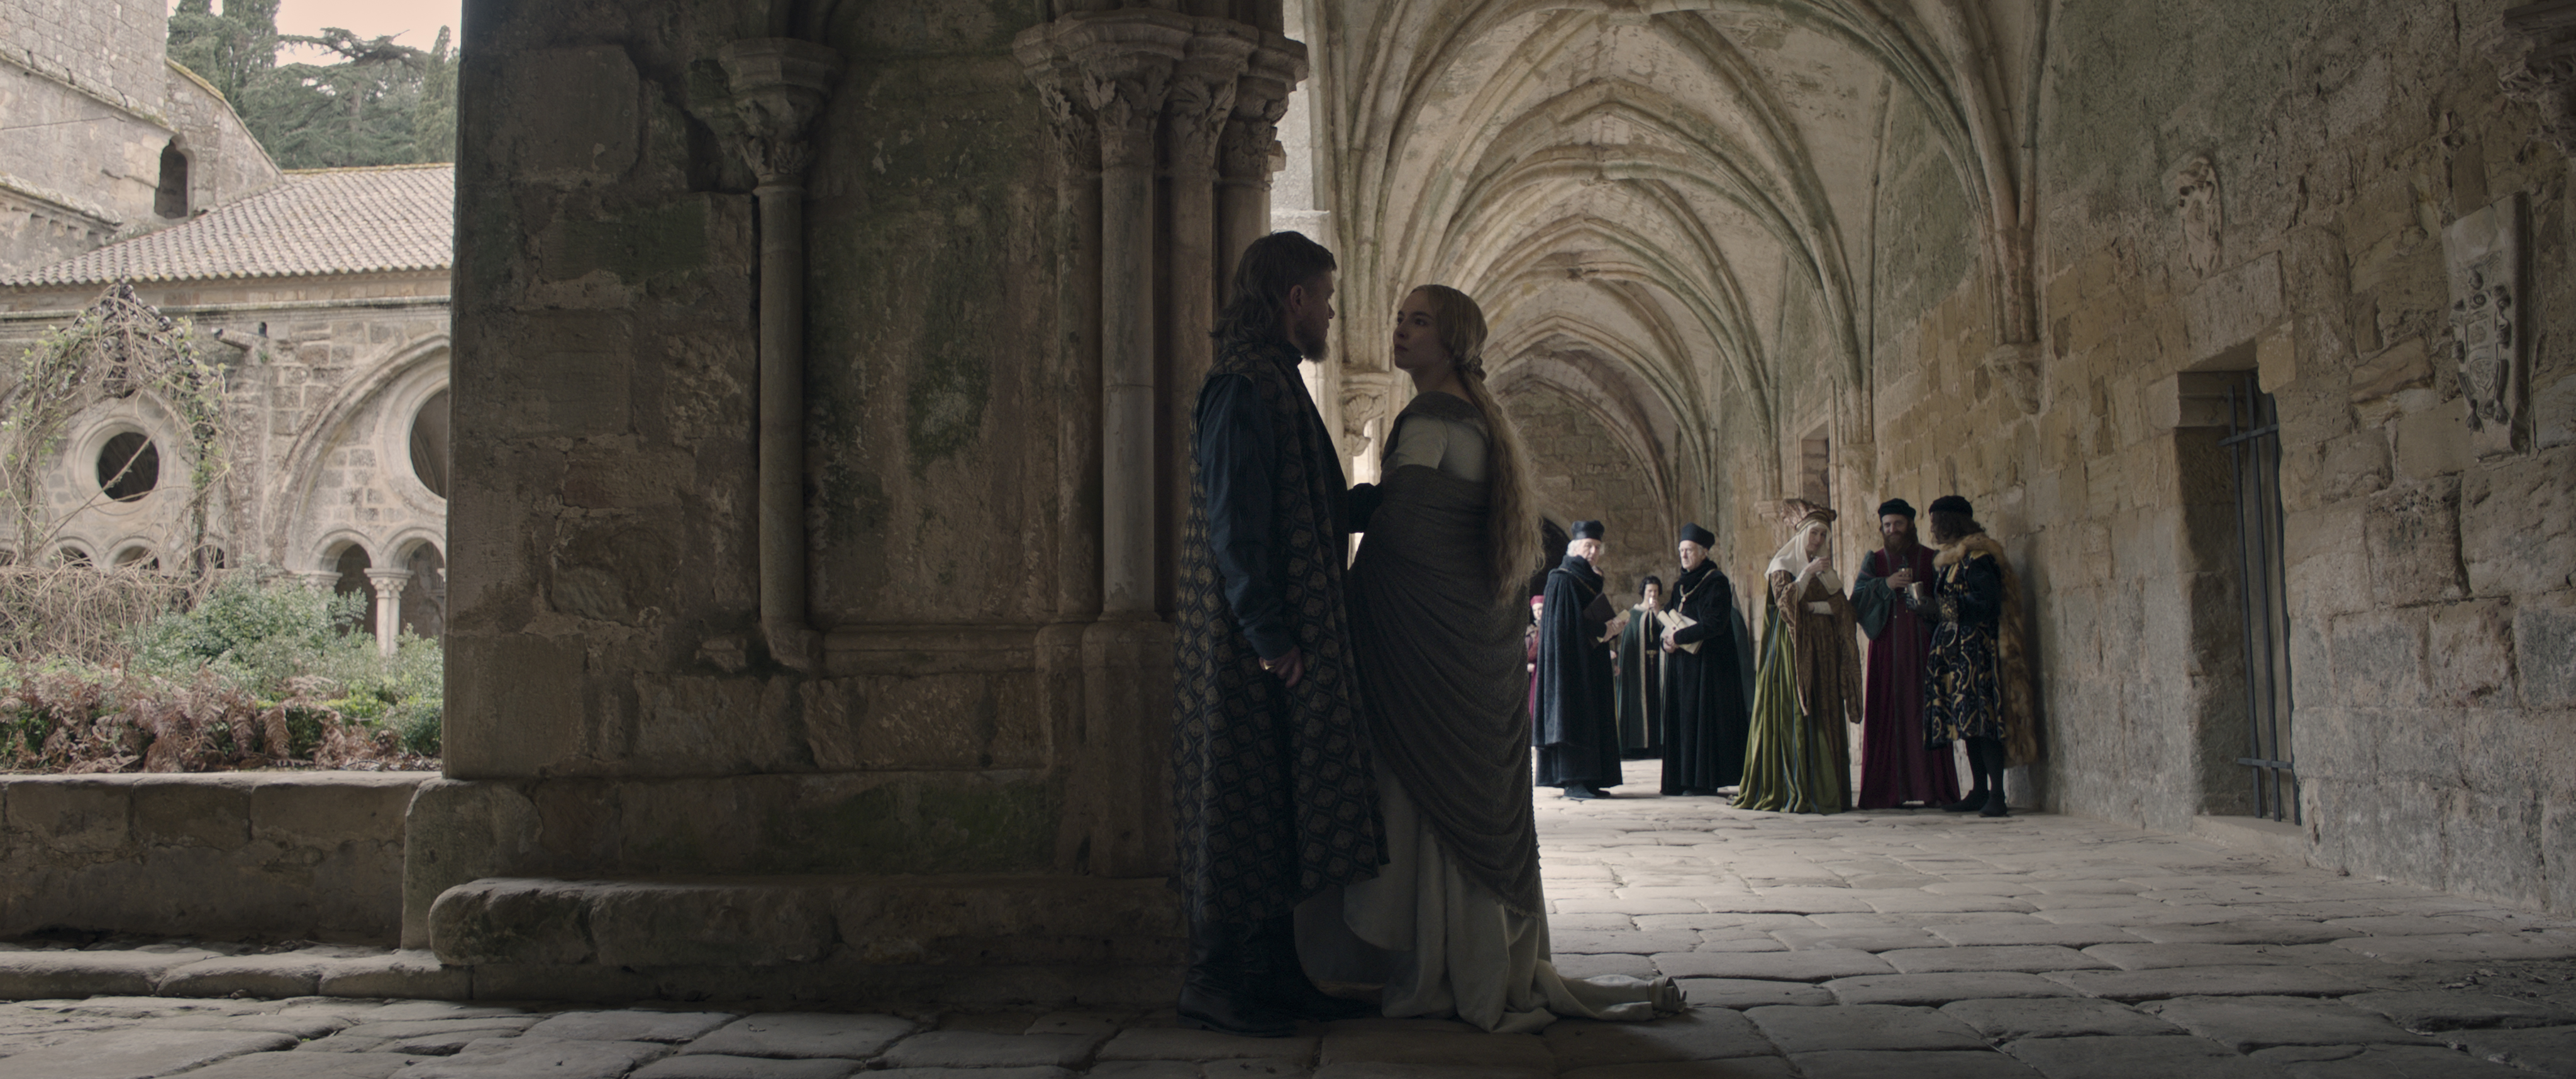 Matt Damon as Jean de Carrouges and Jodie Comer as Marguerite de Carrouges in 20th Century Studios' THE LAST DUEL. © 2021 20th Century Studios. All Rights Reserved.